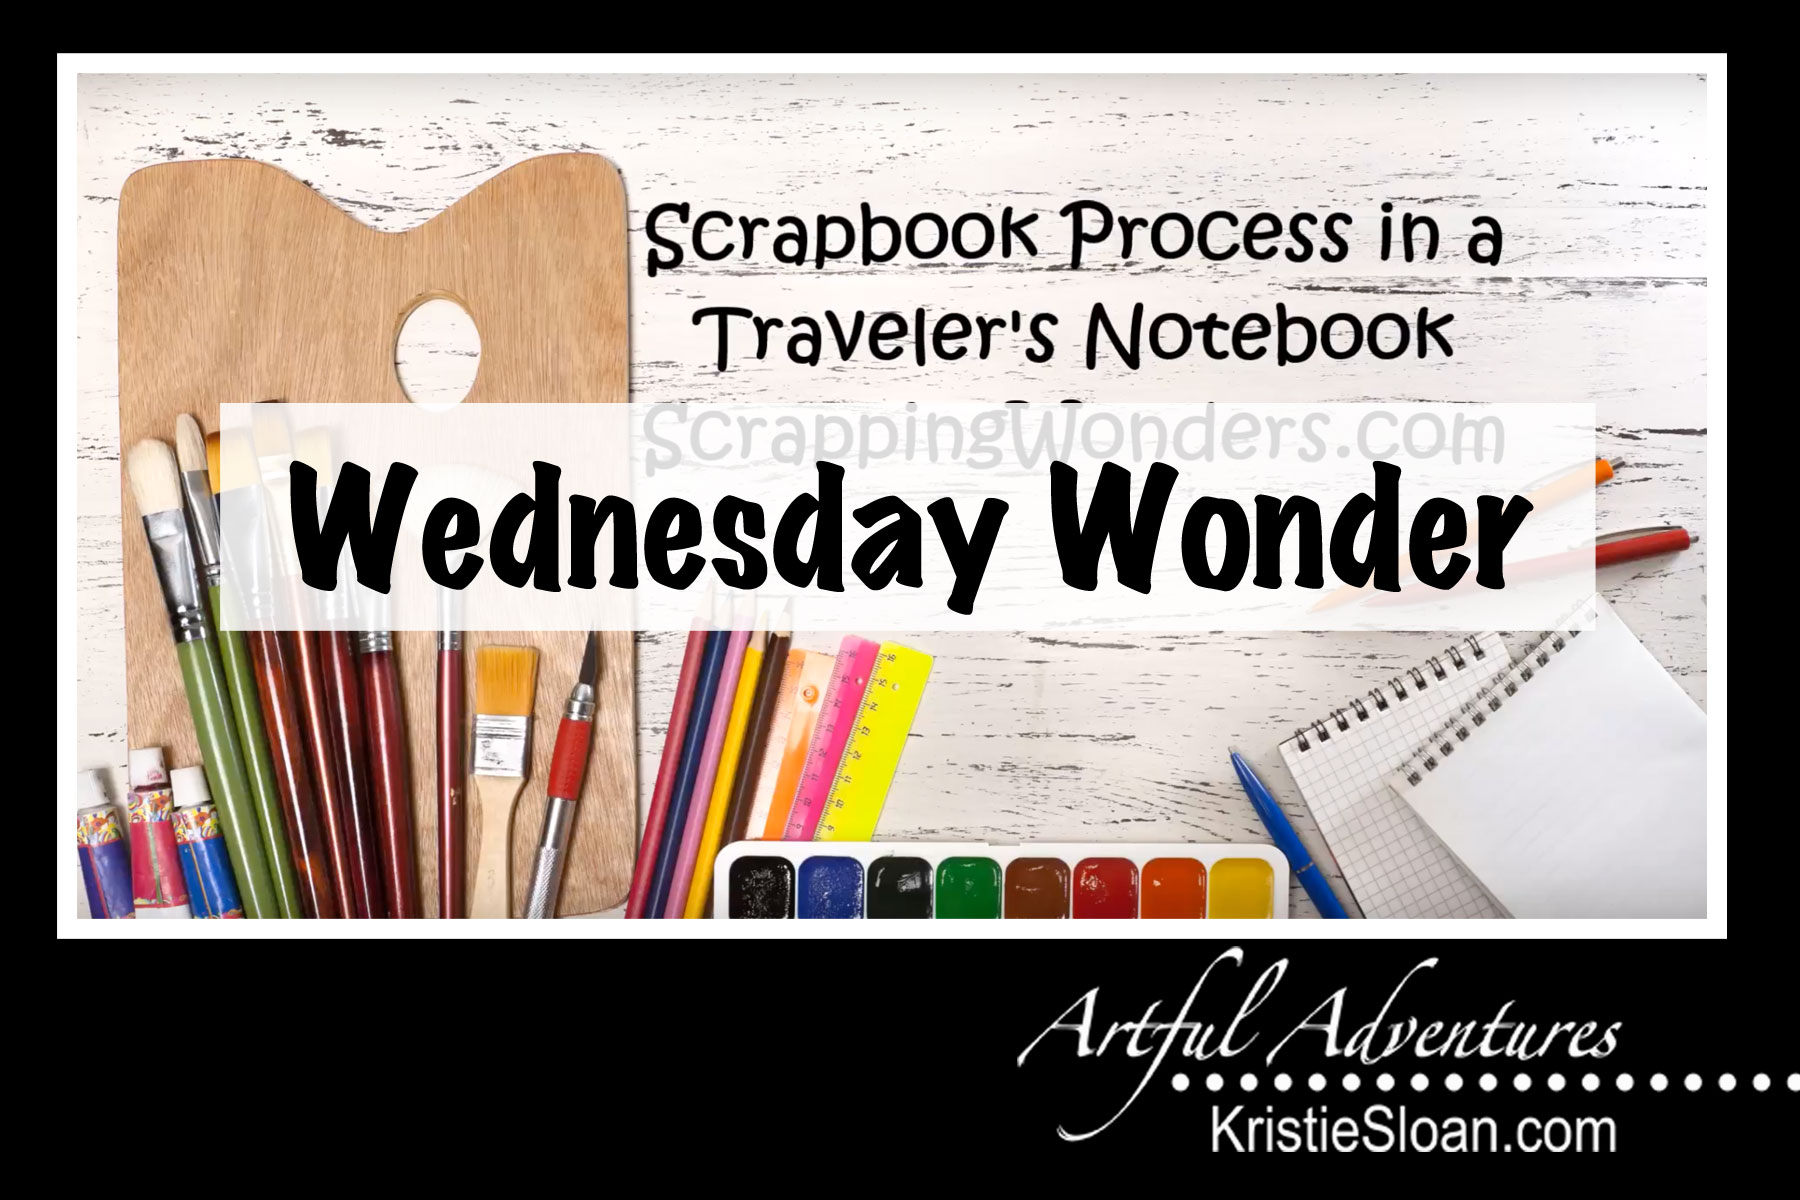 Using Travelers Notebooks for small scrapbooking